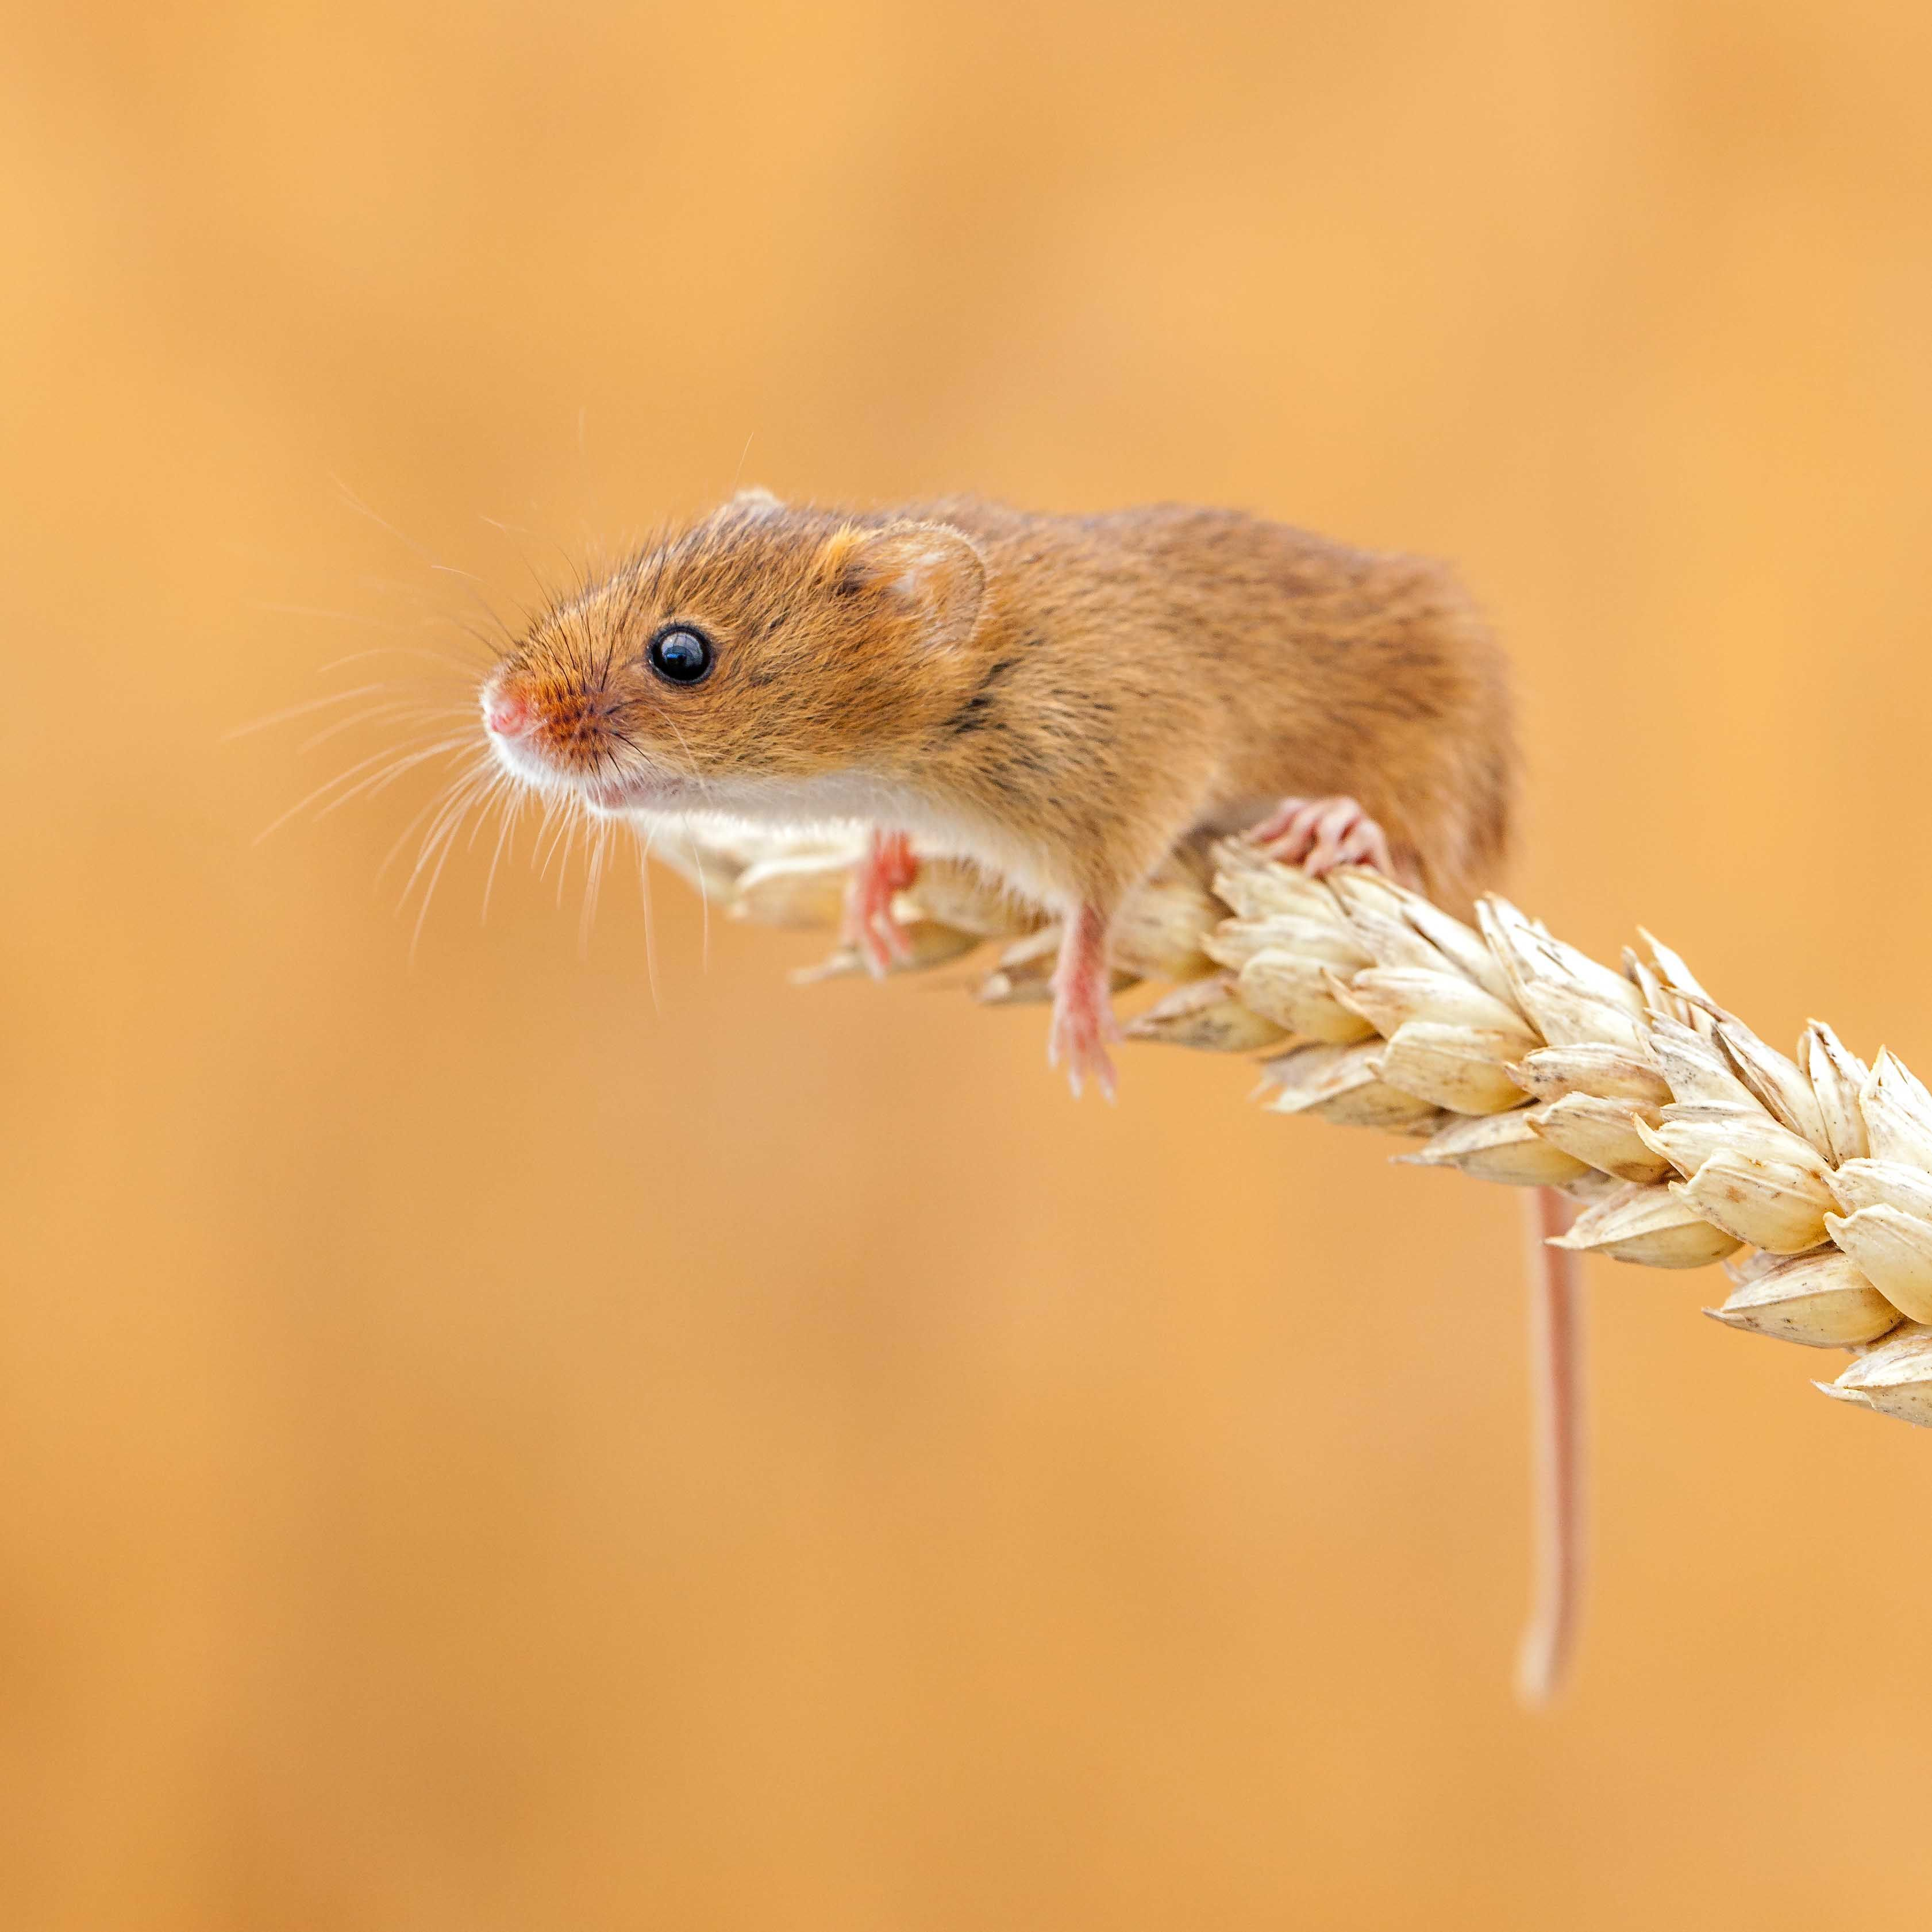 Cute mouse, field mouse, mouse and wheat, English mouse